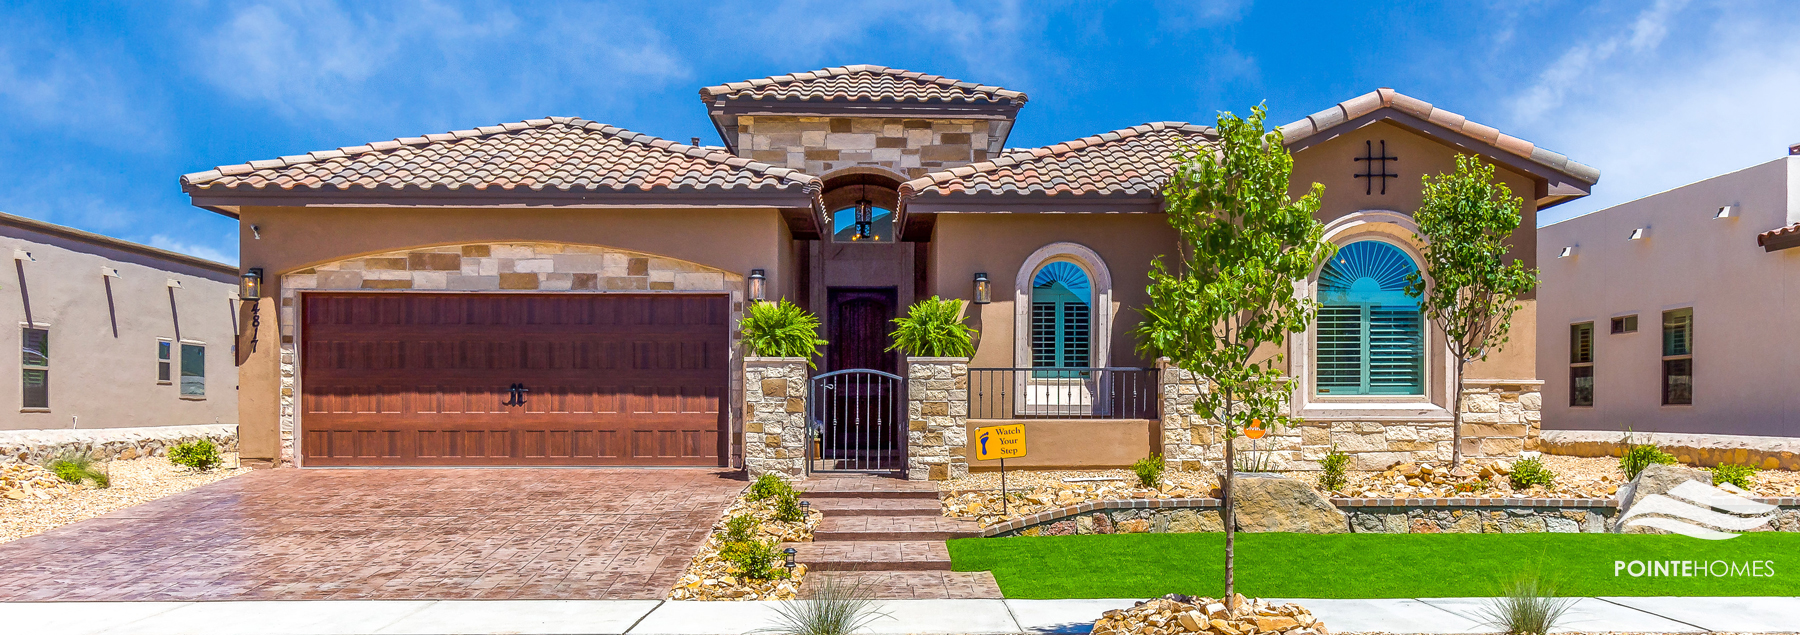 Featured homes el paso festival of homes for New construction homes in el paso tx